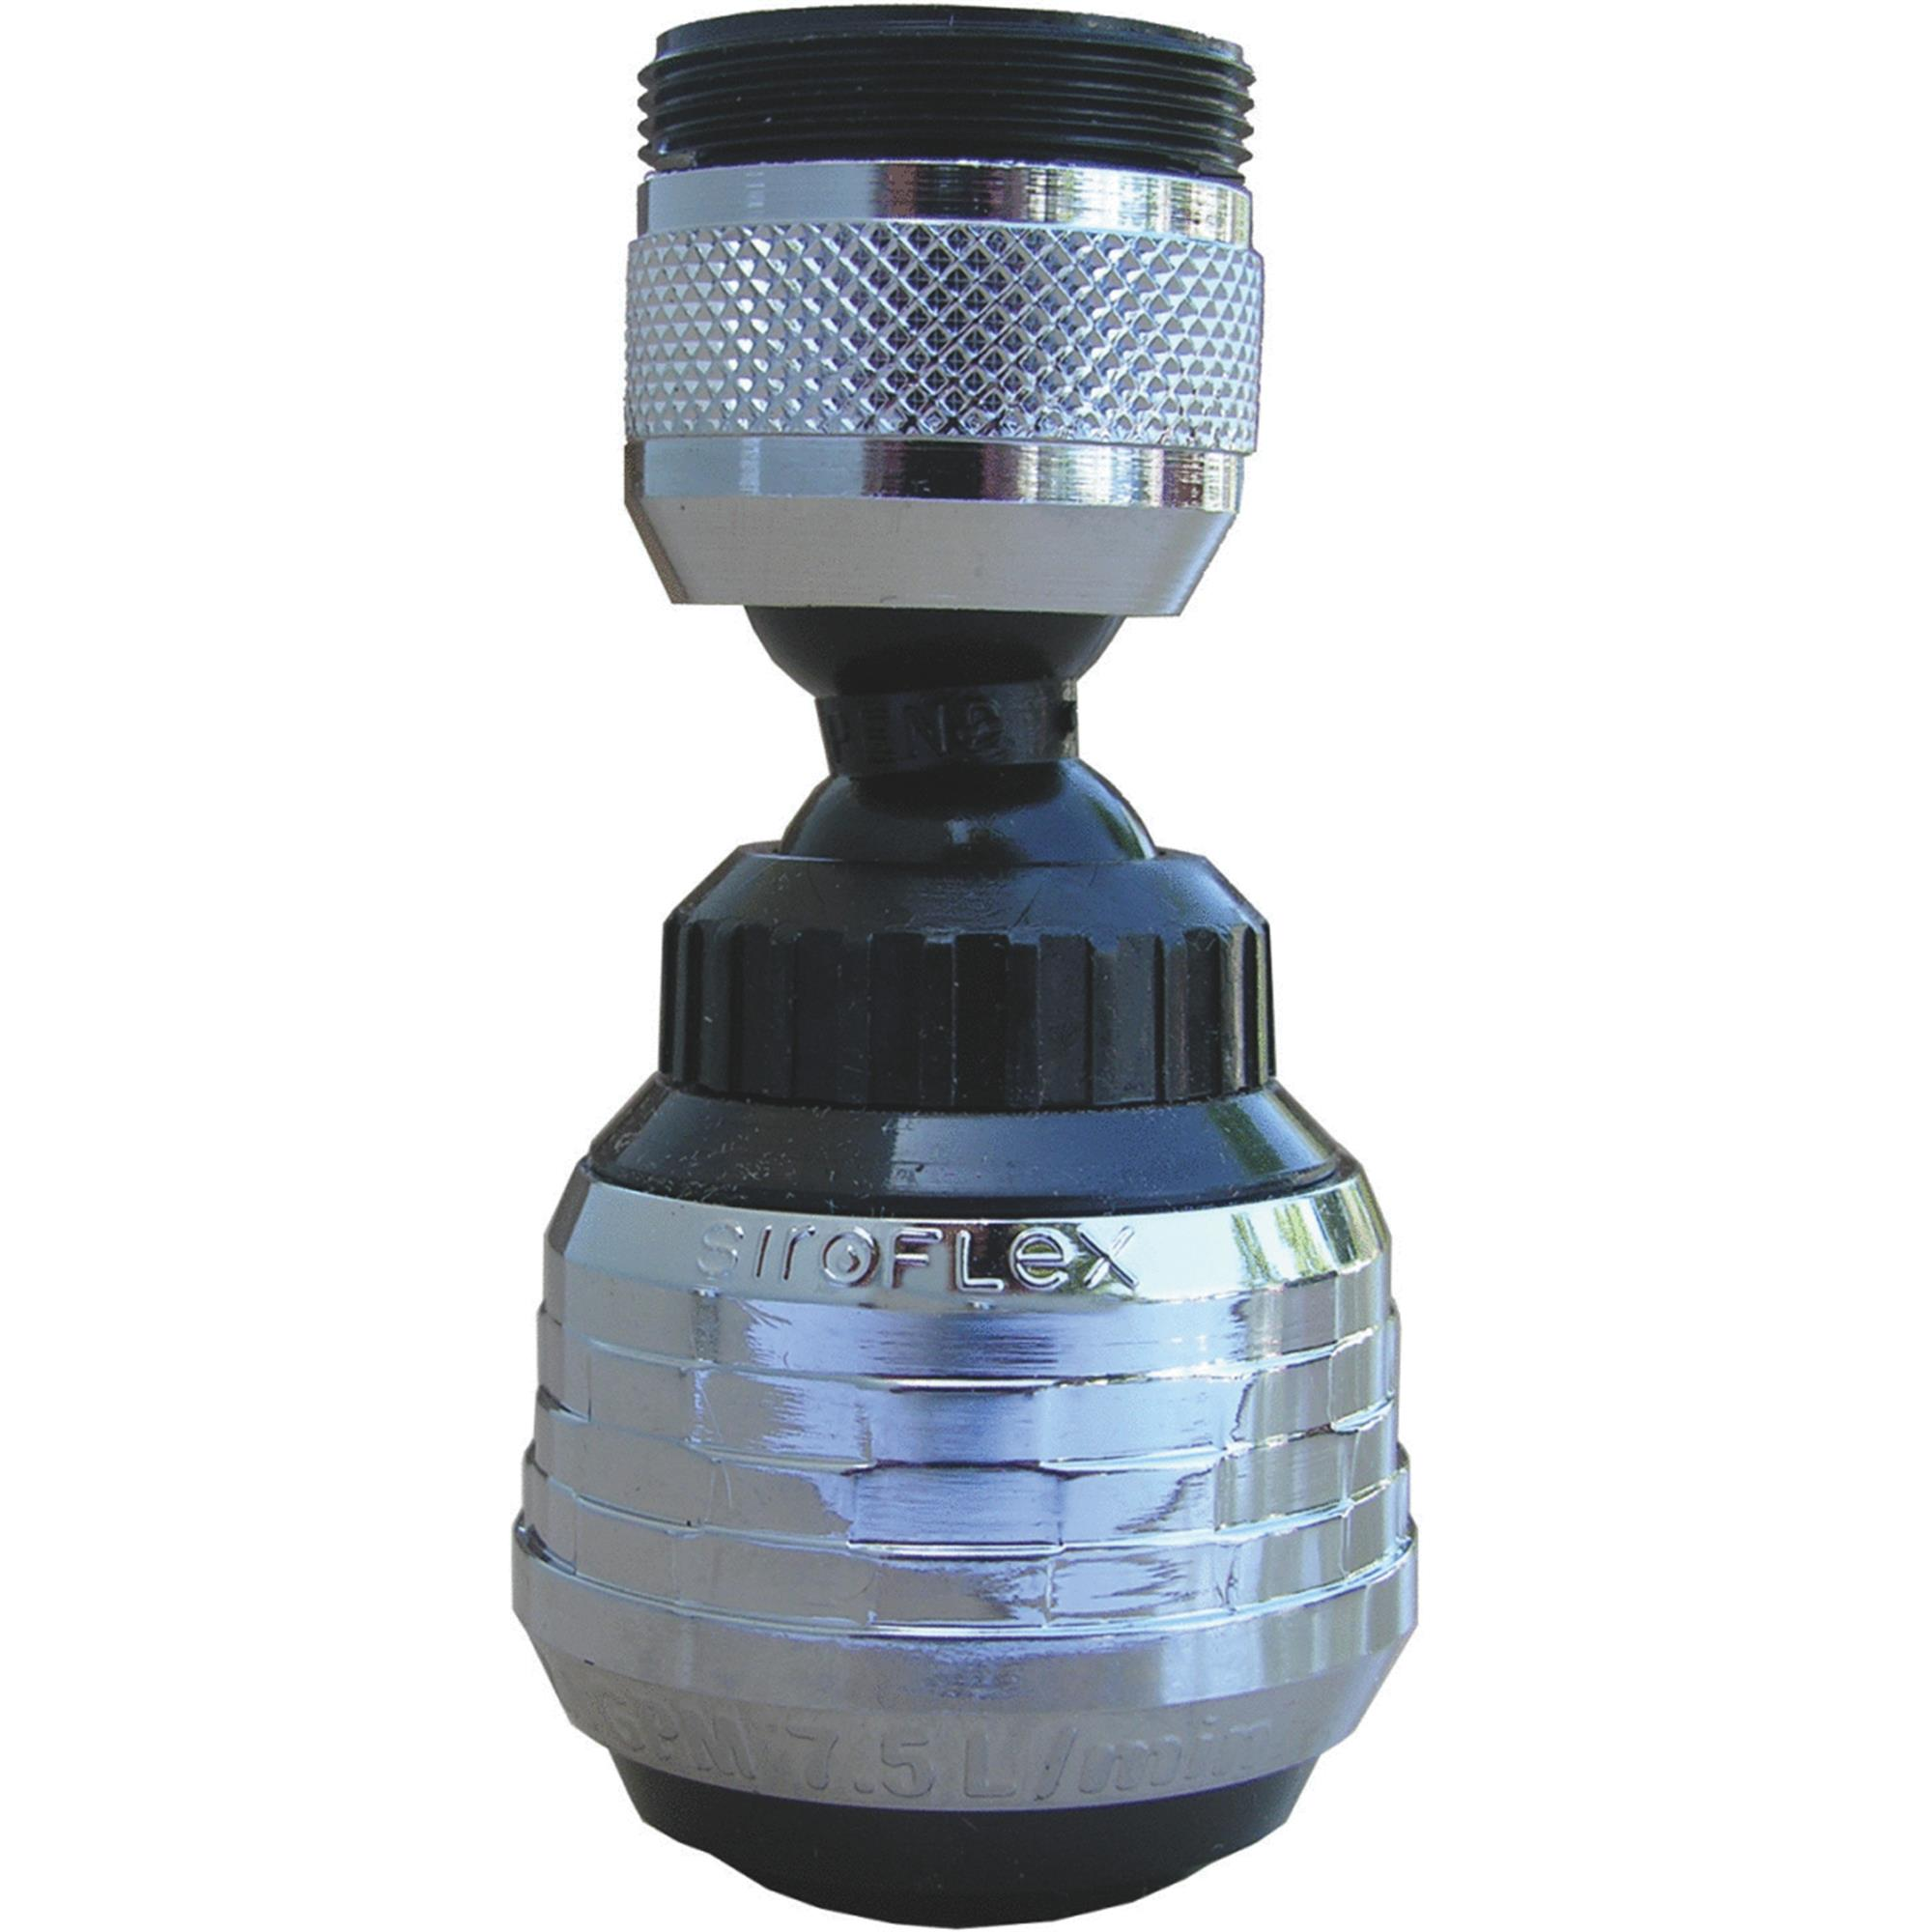 Lasco Swivel Spray Dual Thread Faucet Aerator